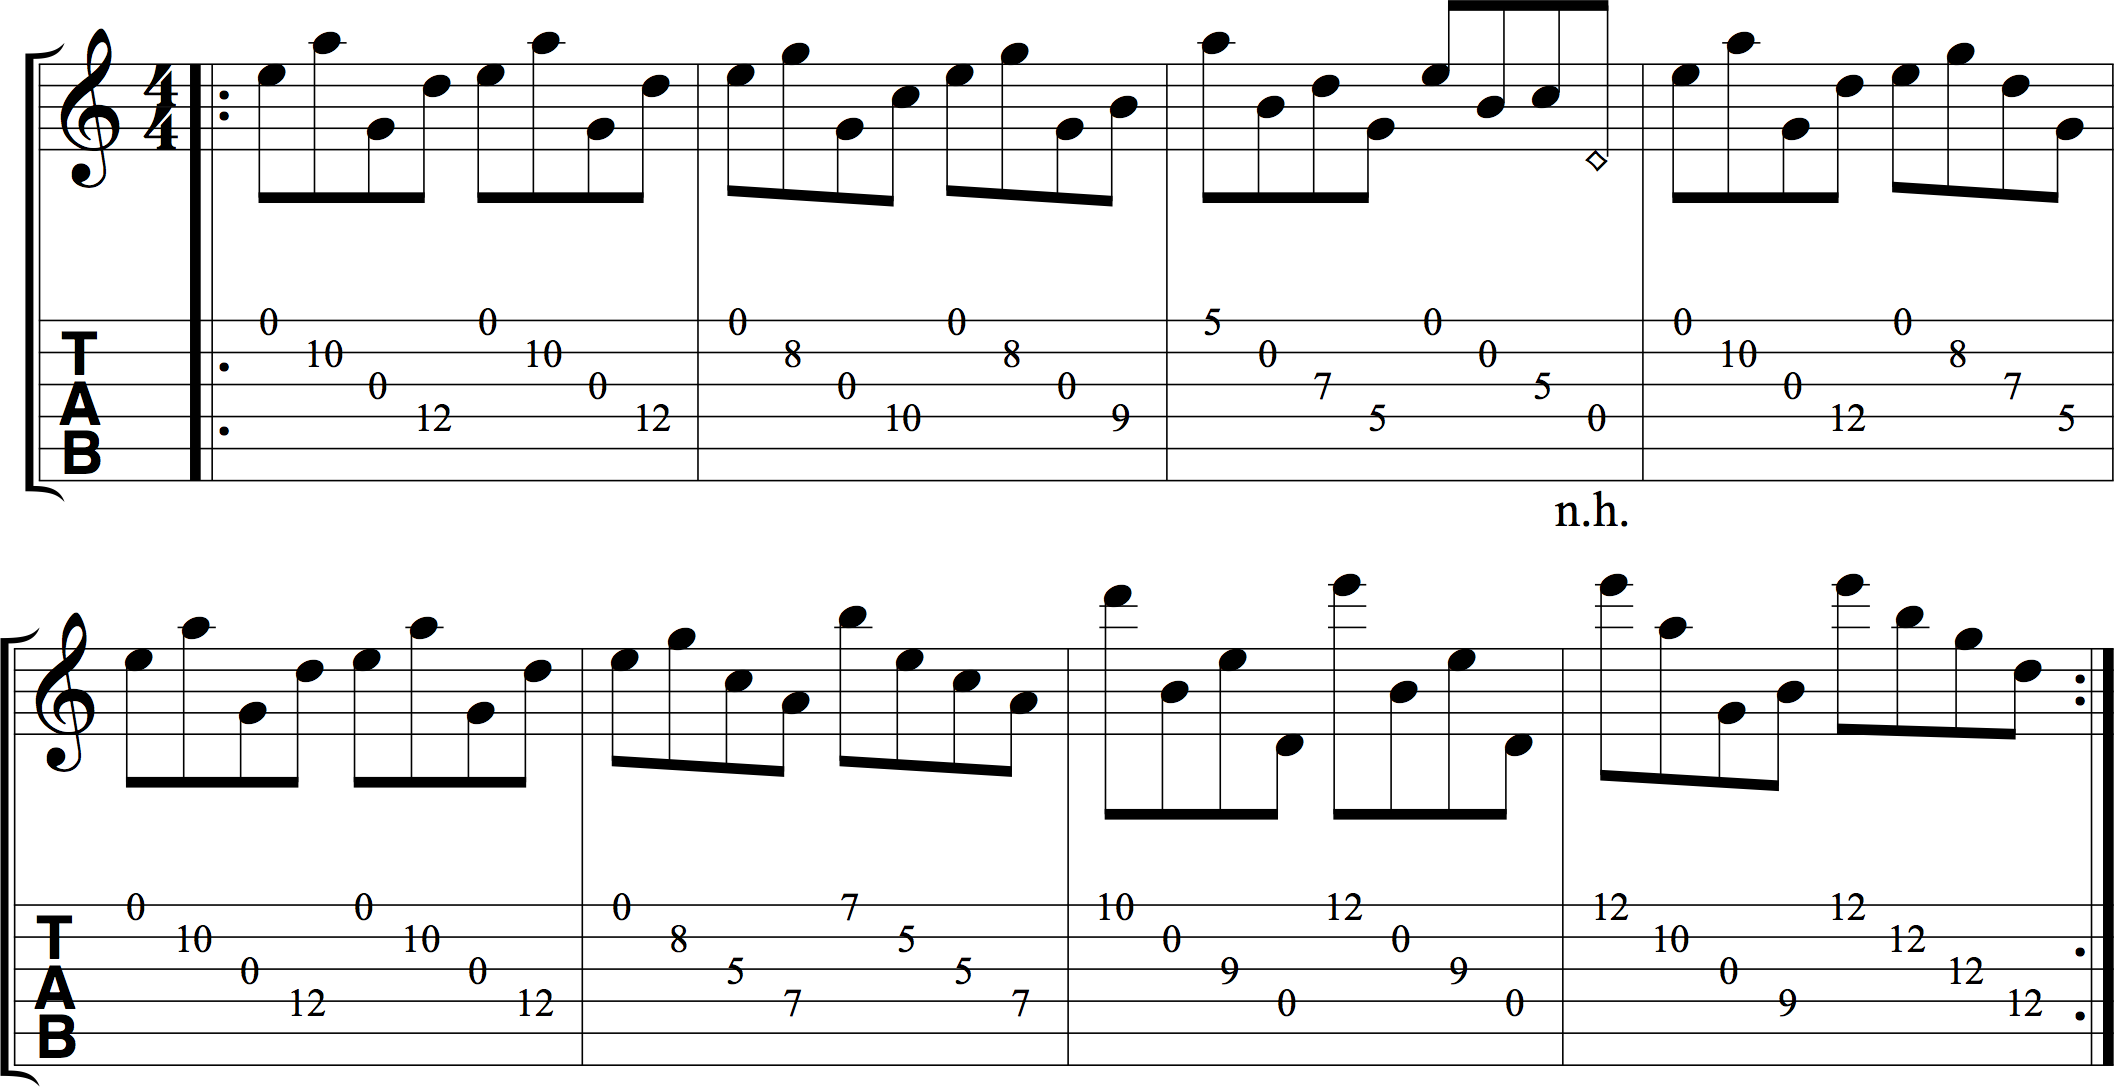 guitar alternate picking exercise.